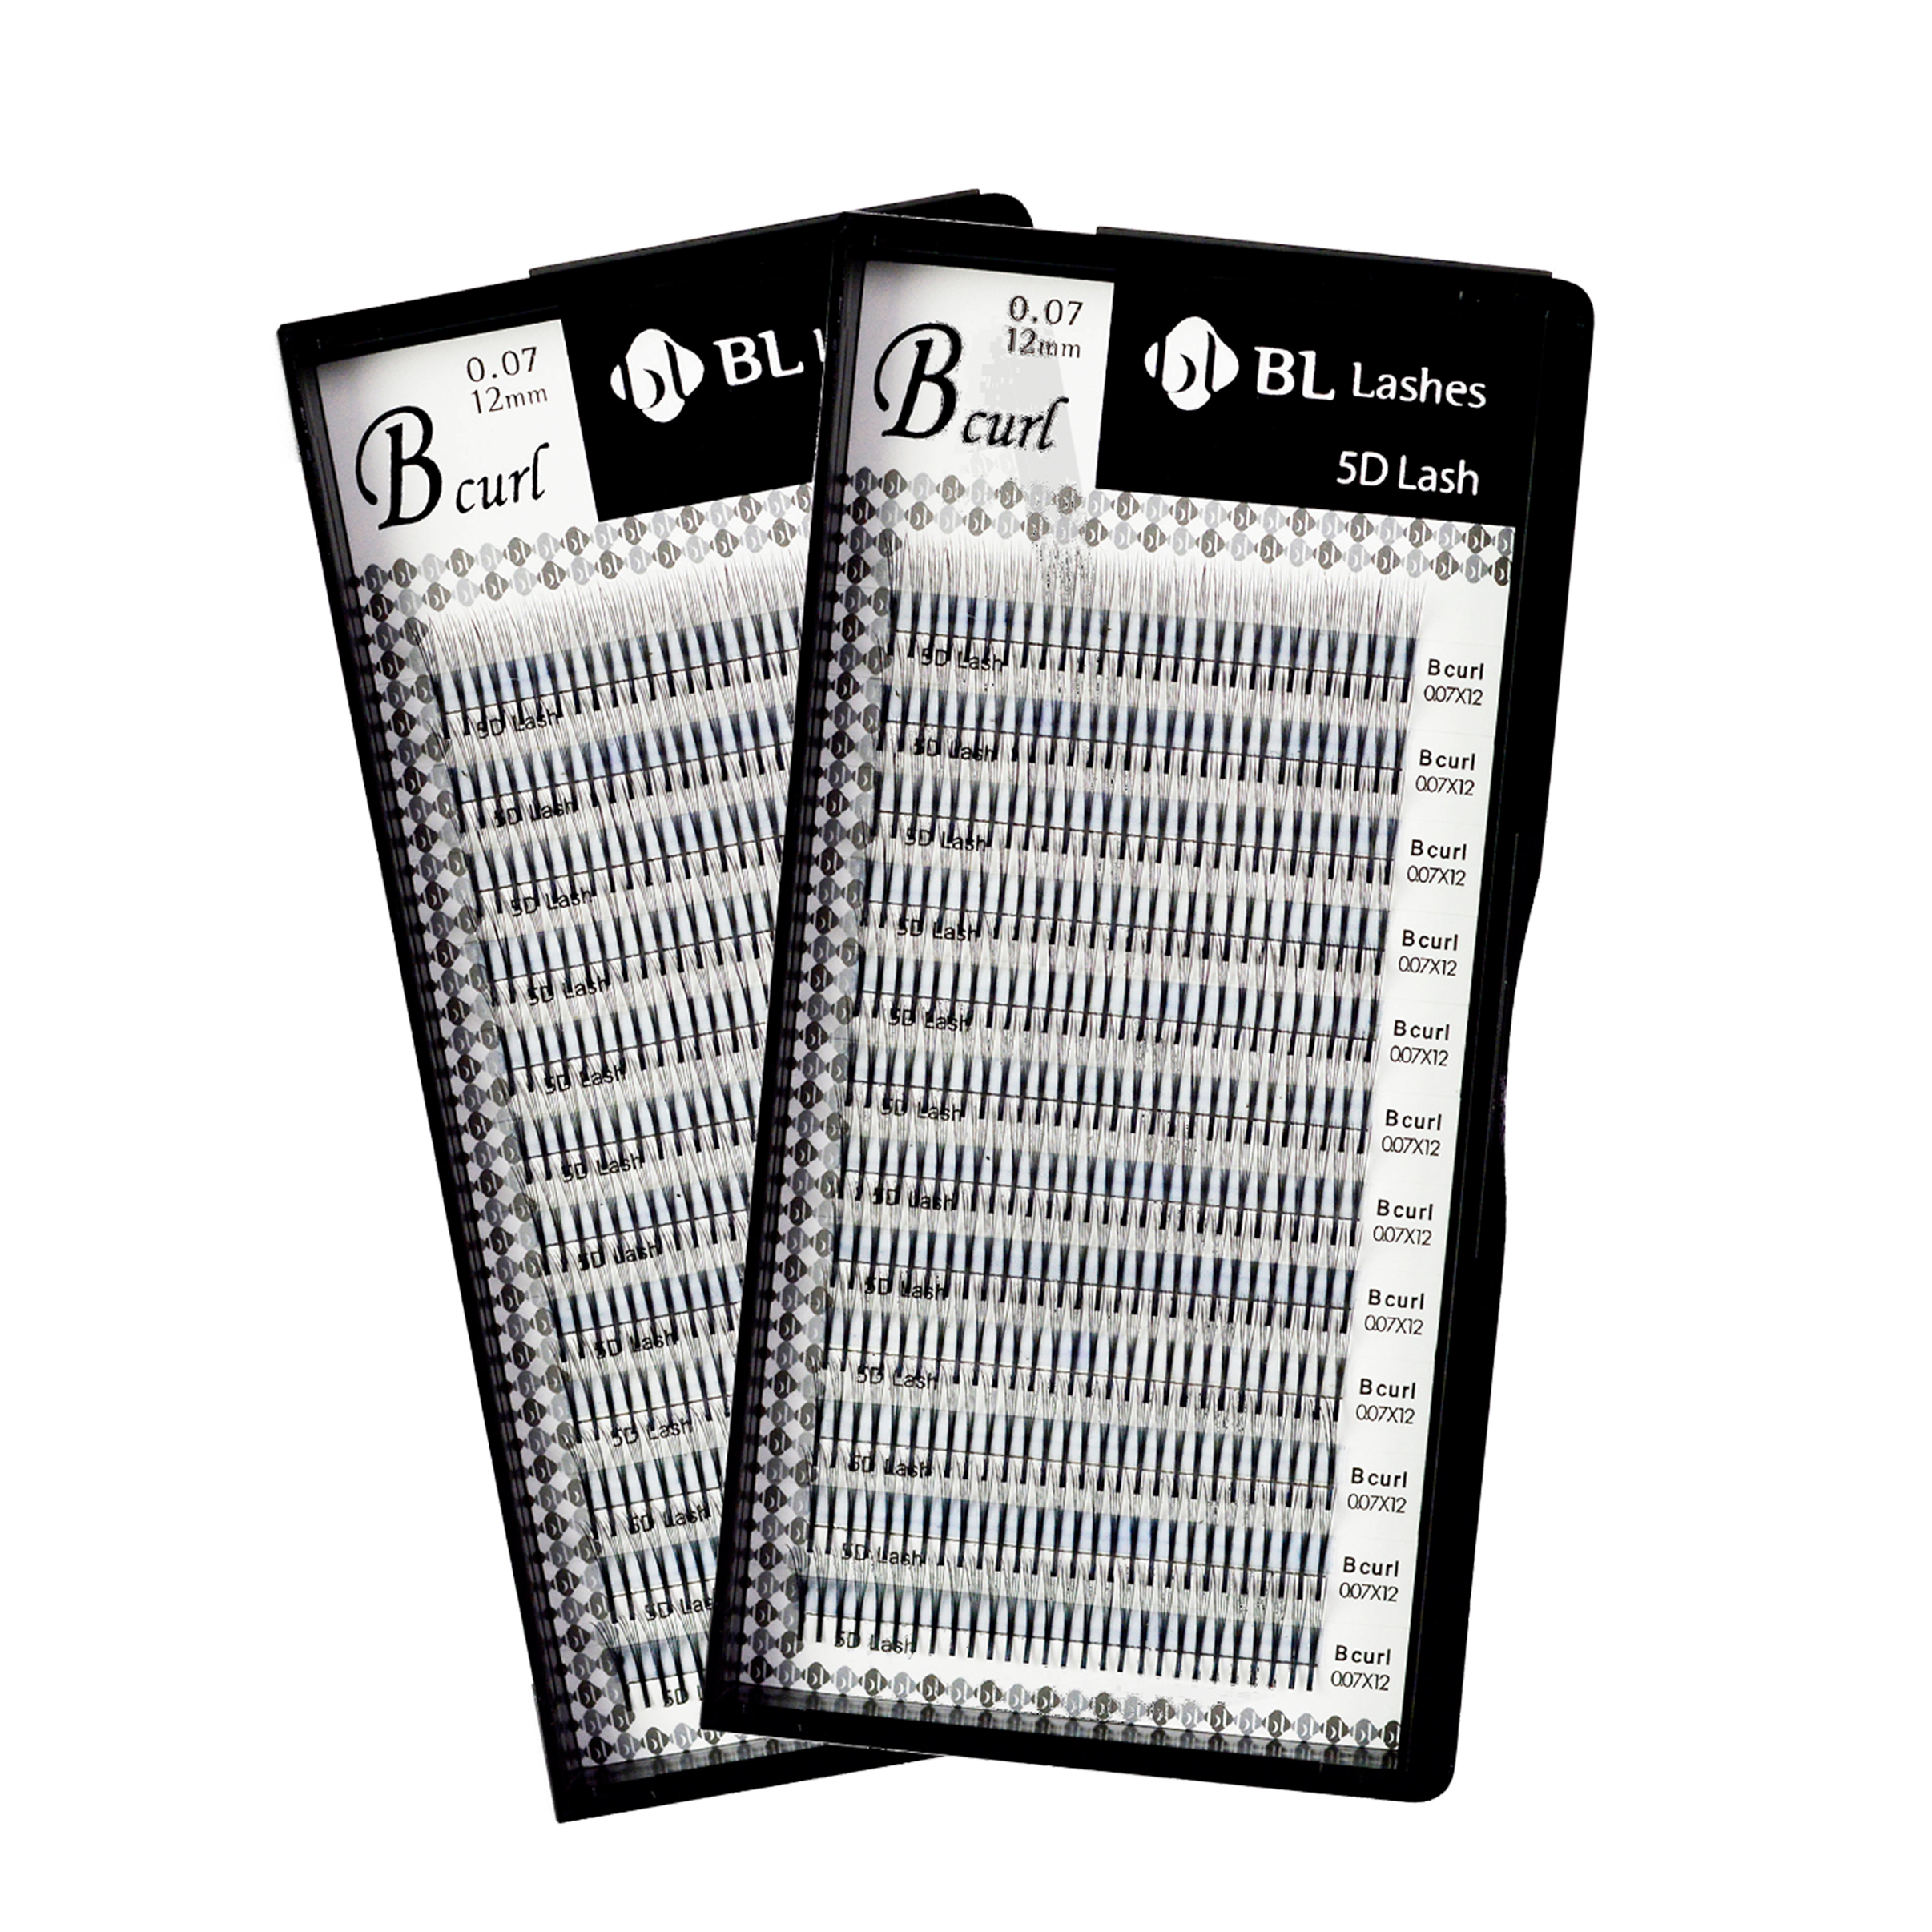 Shop 5D Lashes